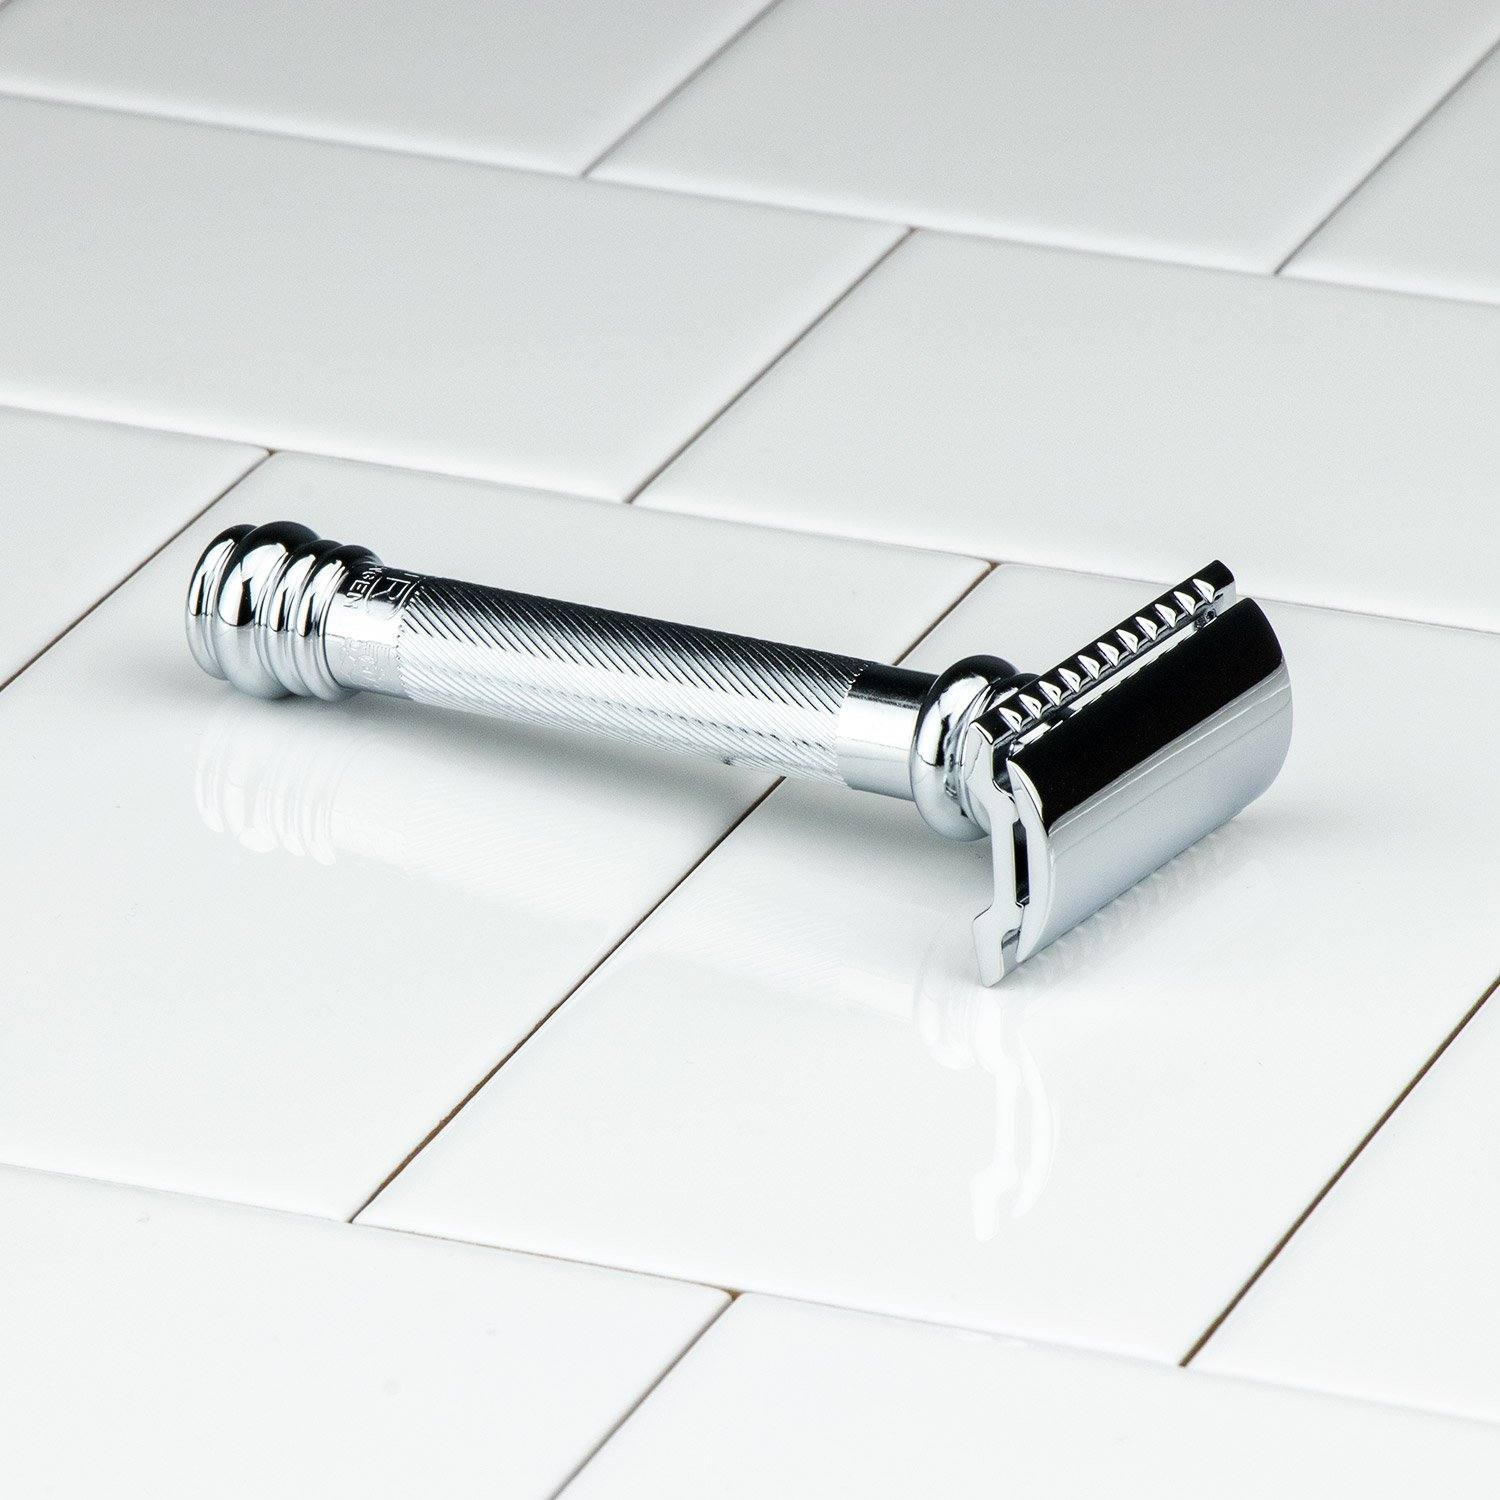 Merkur Double Edge Safety Razor, Straight Cut, Extra Long Handle, 38C